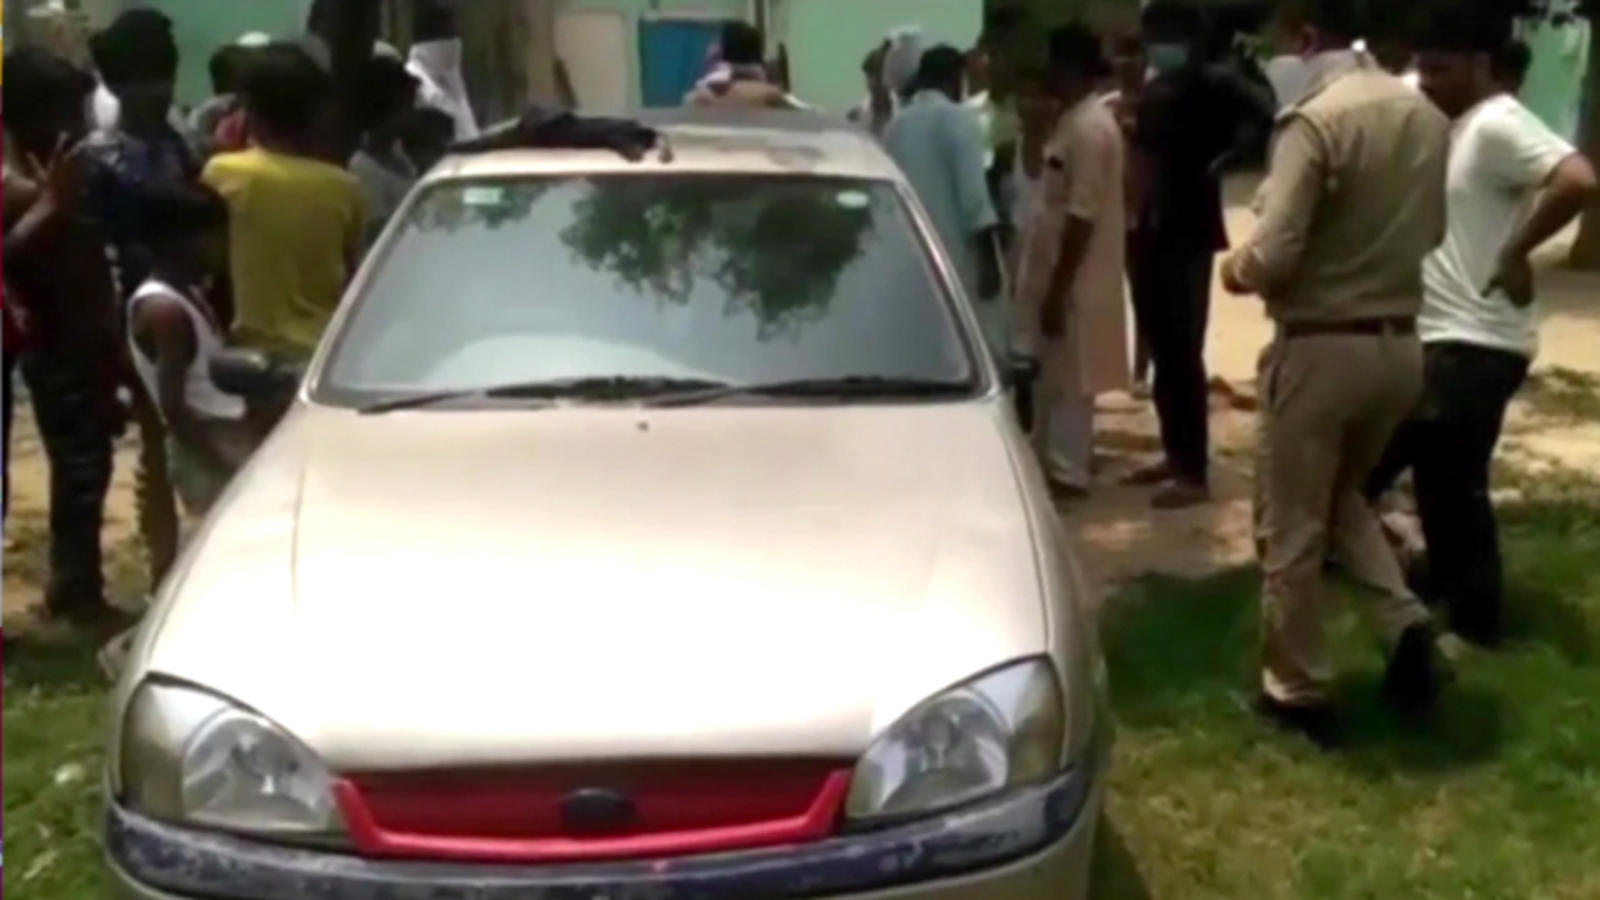 Up 2 Children Suffocate To Death Inside Locked Car In Moradabad City Times Of India Videos